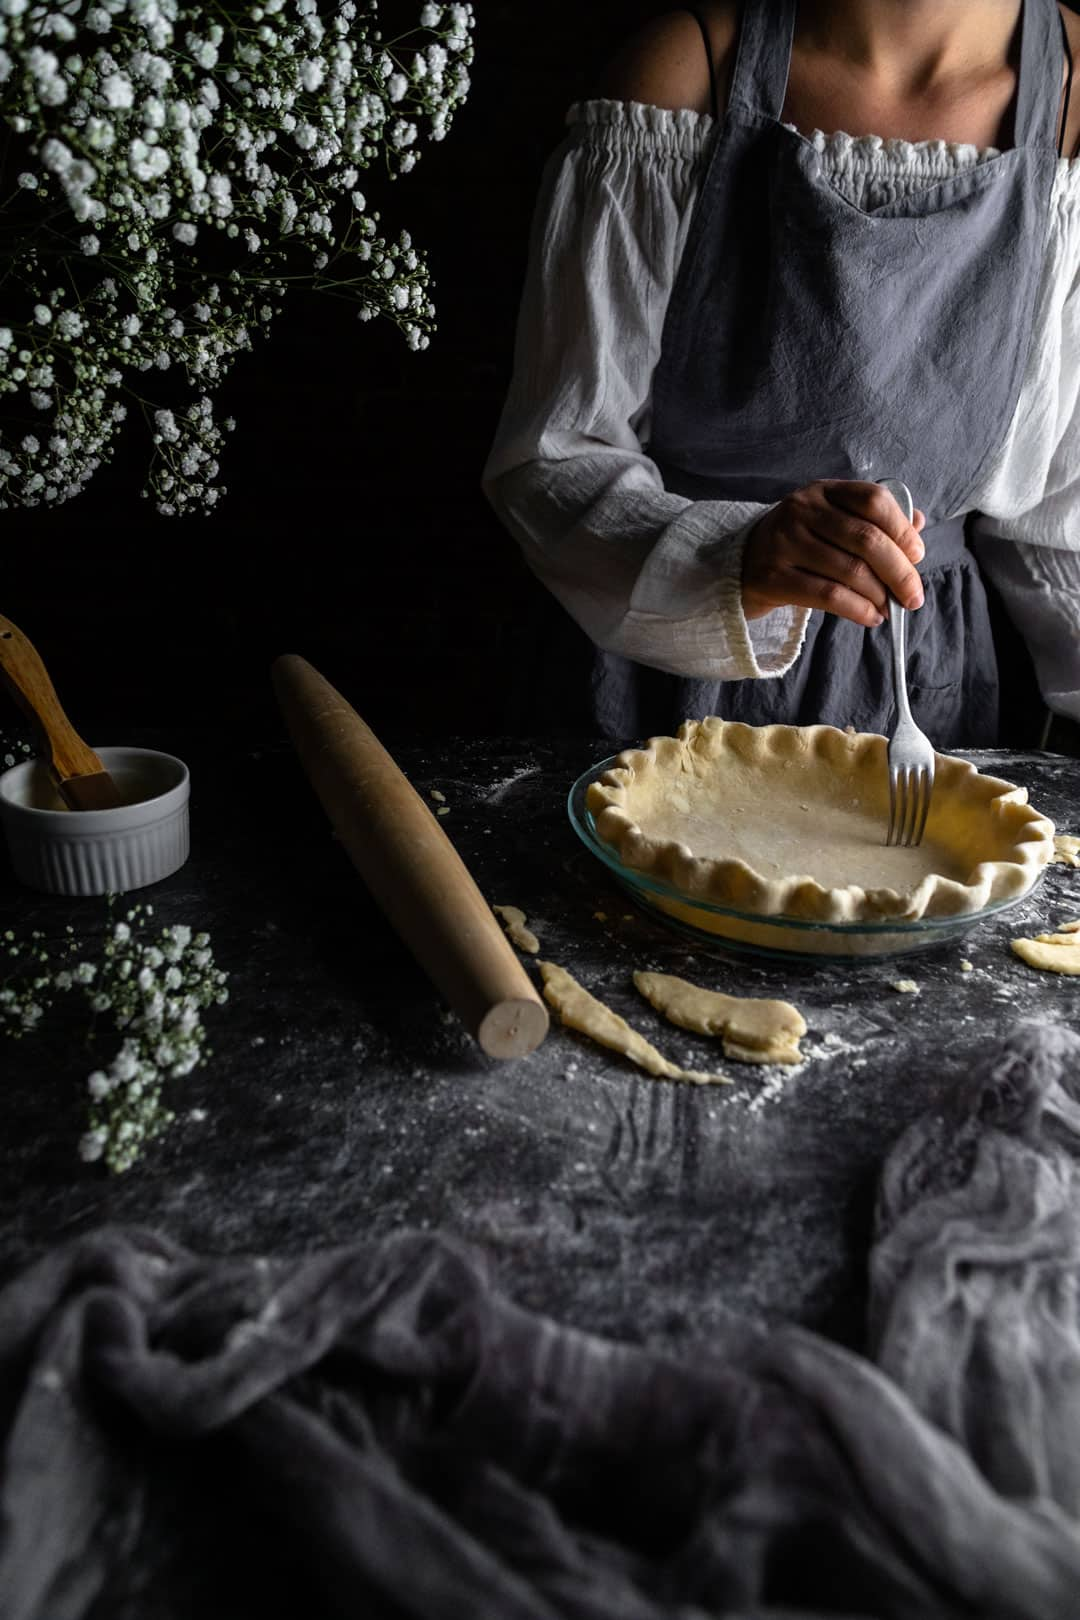 Docking a pie crust with a fork